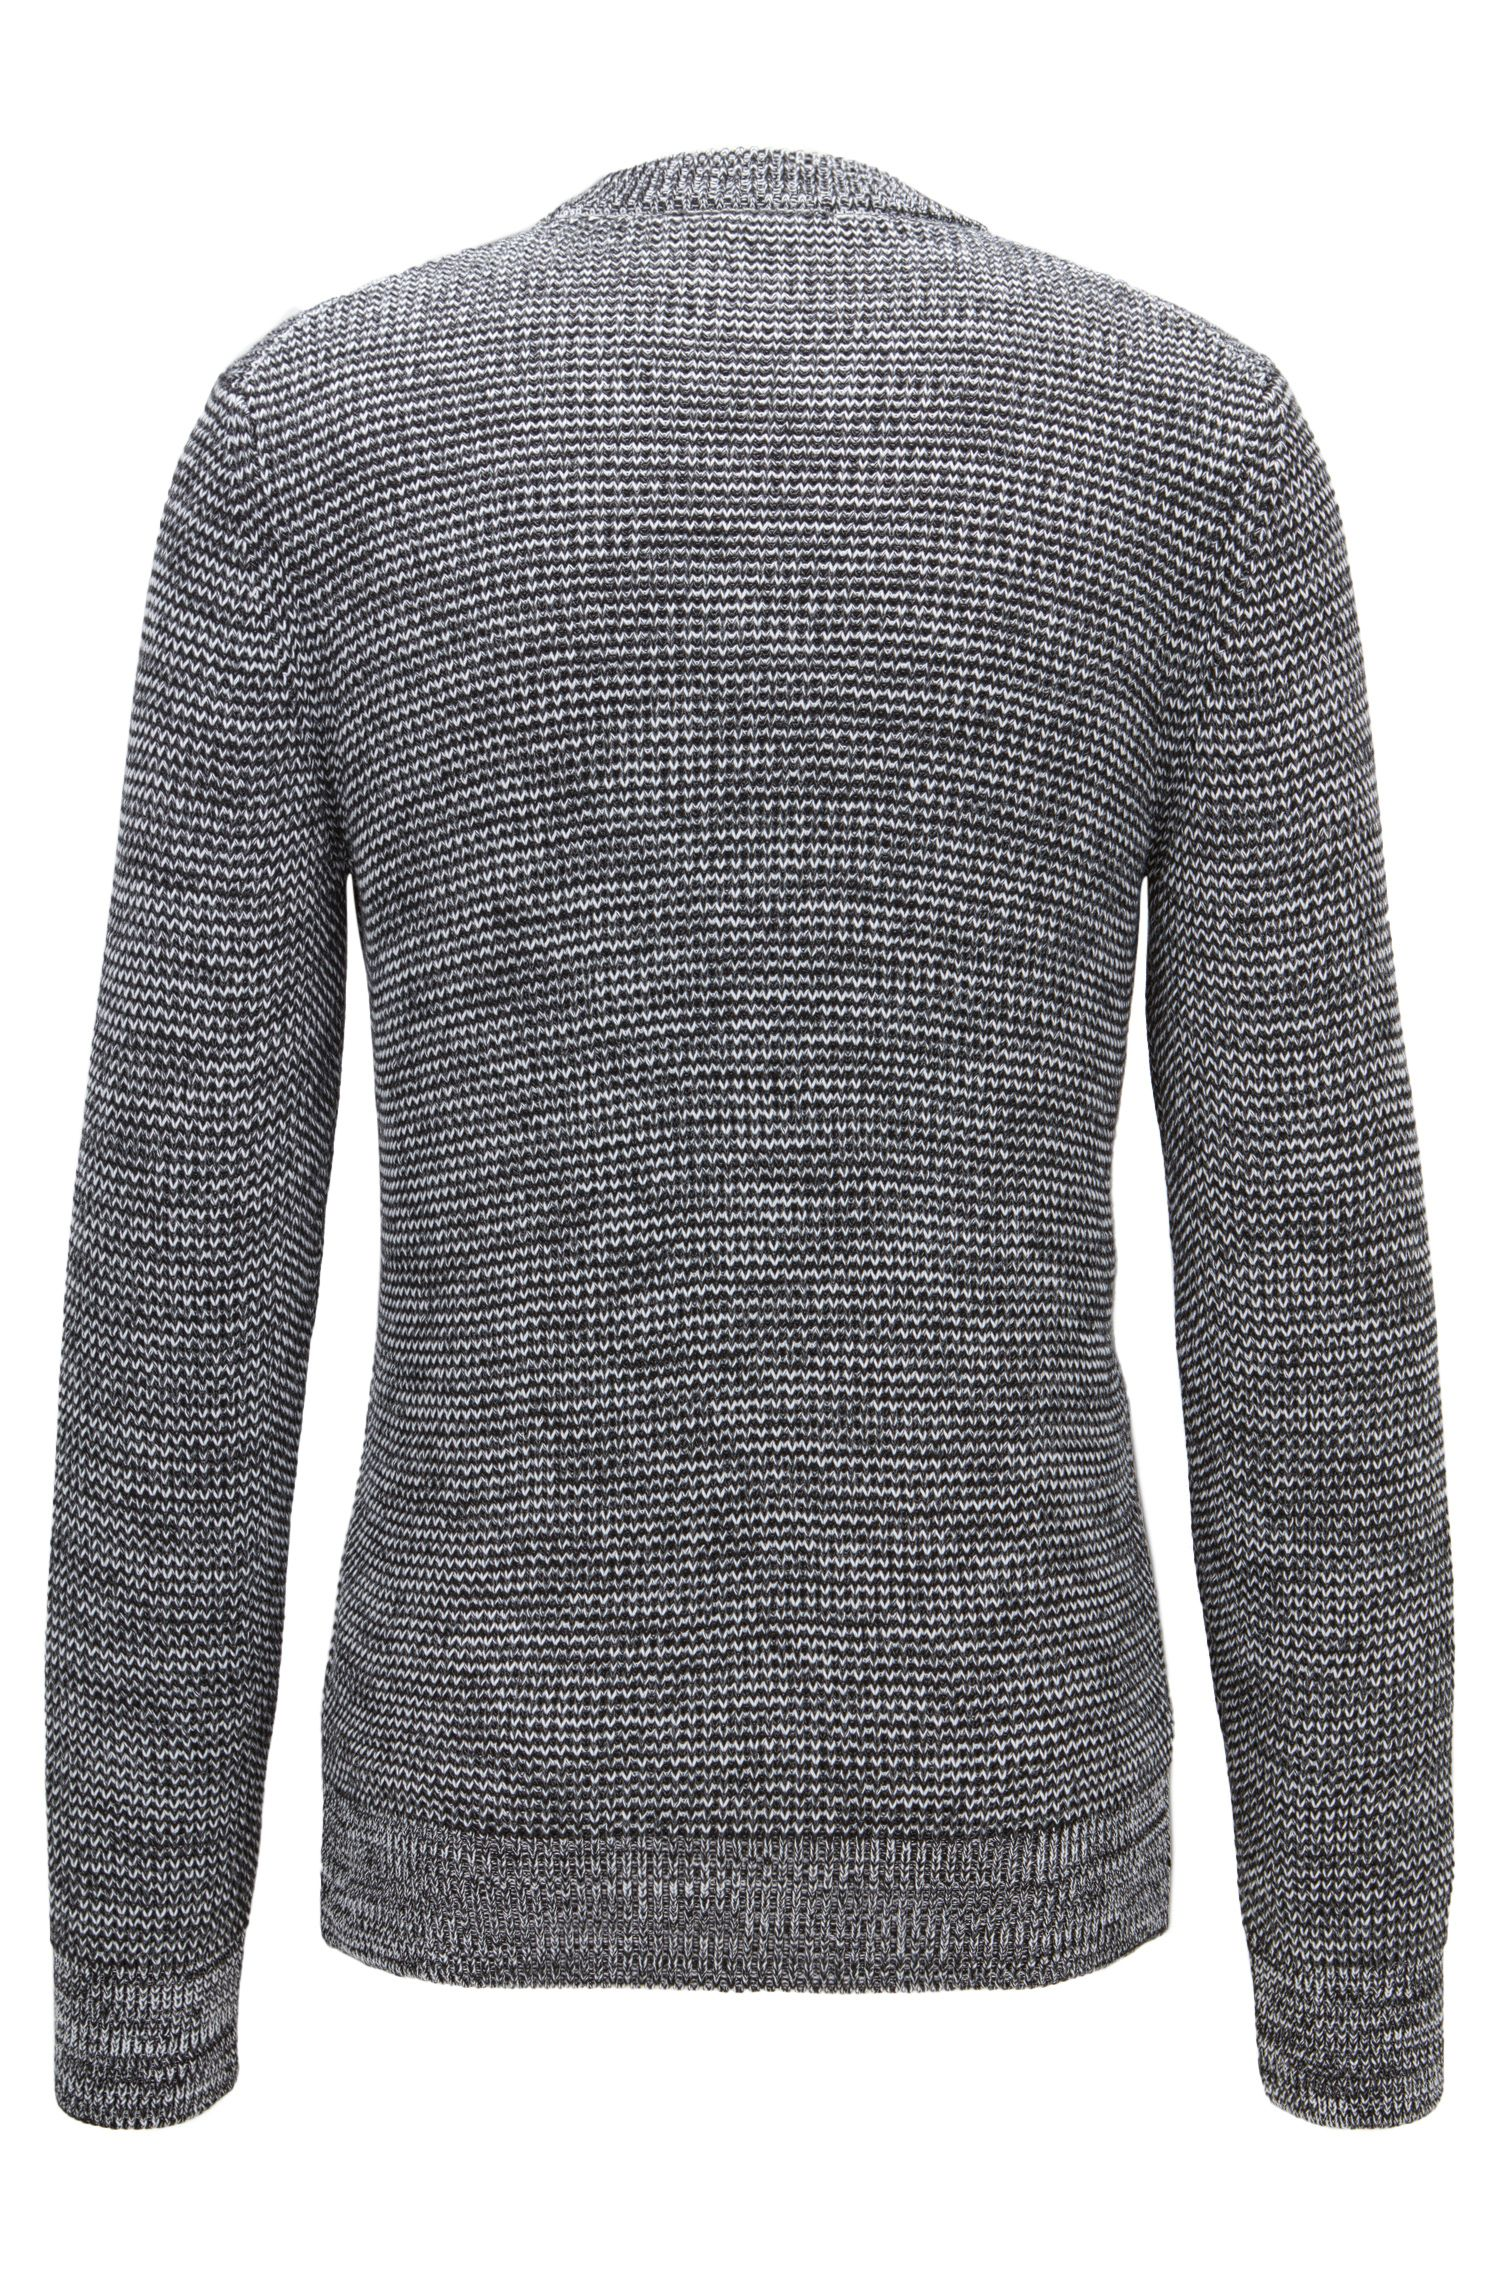 Mouline-Knit Cotton Sweater | Picot, Grey